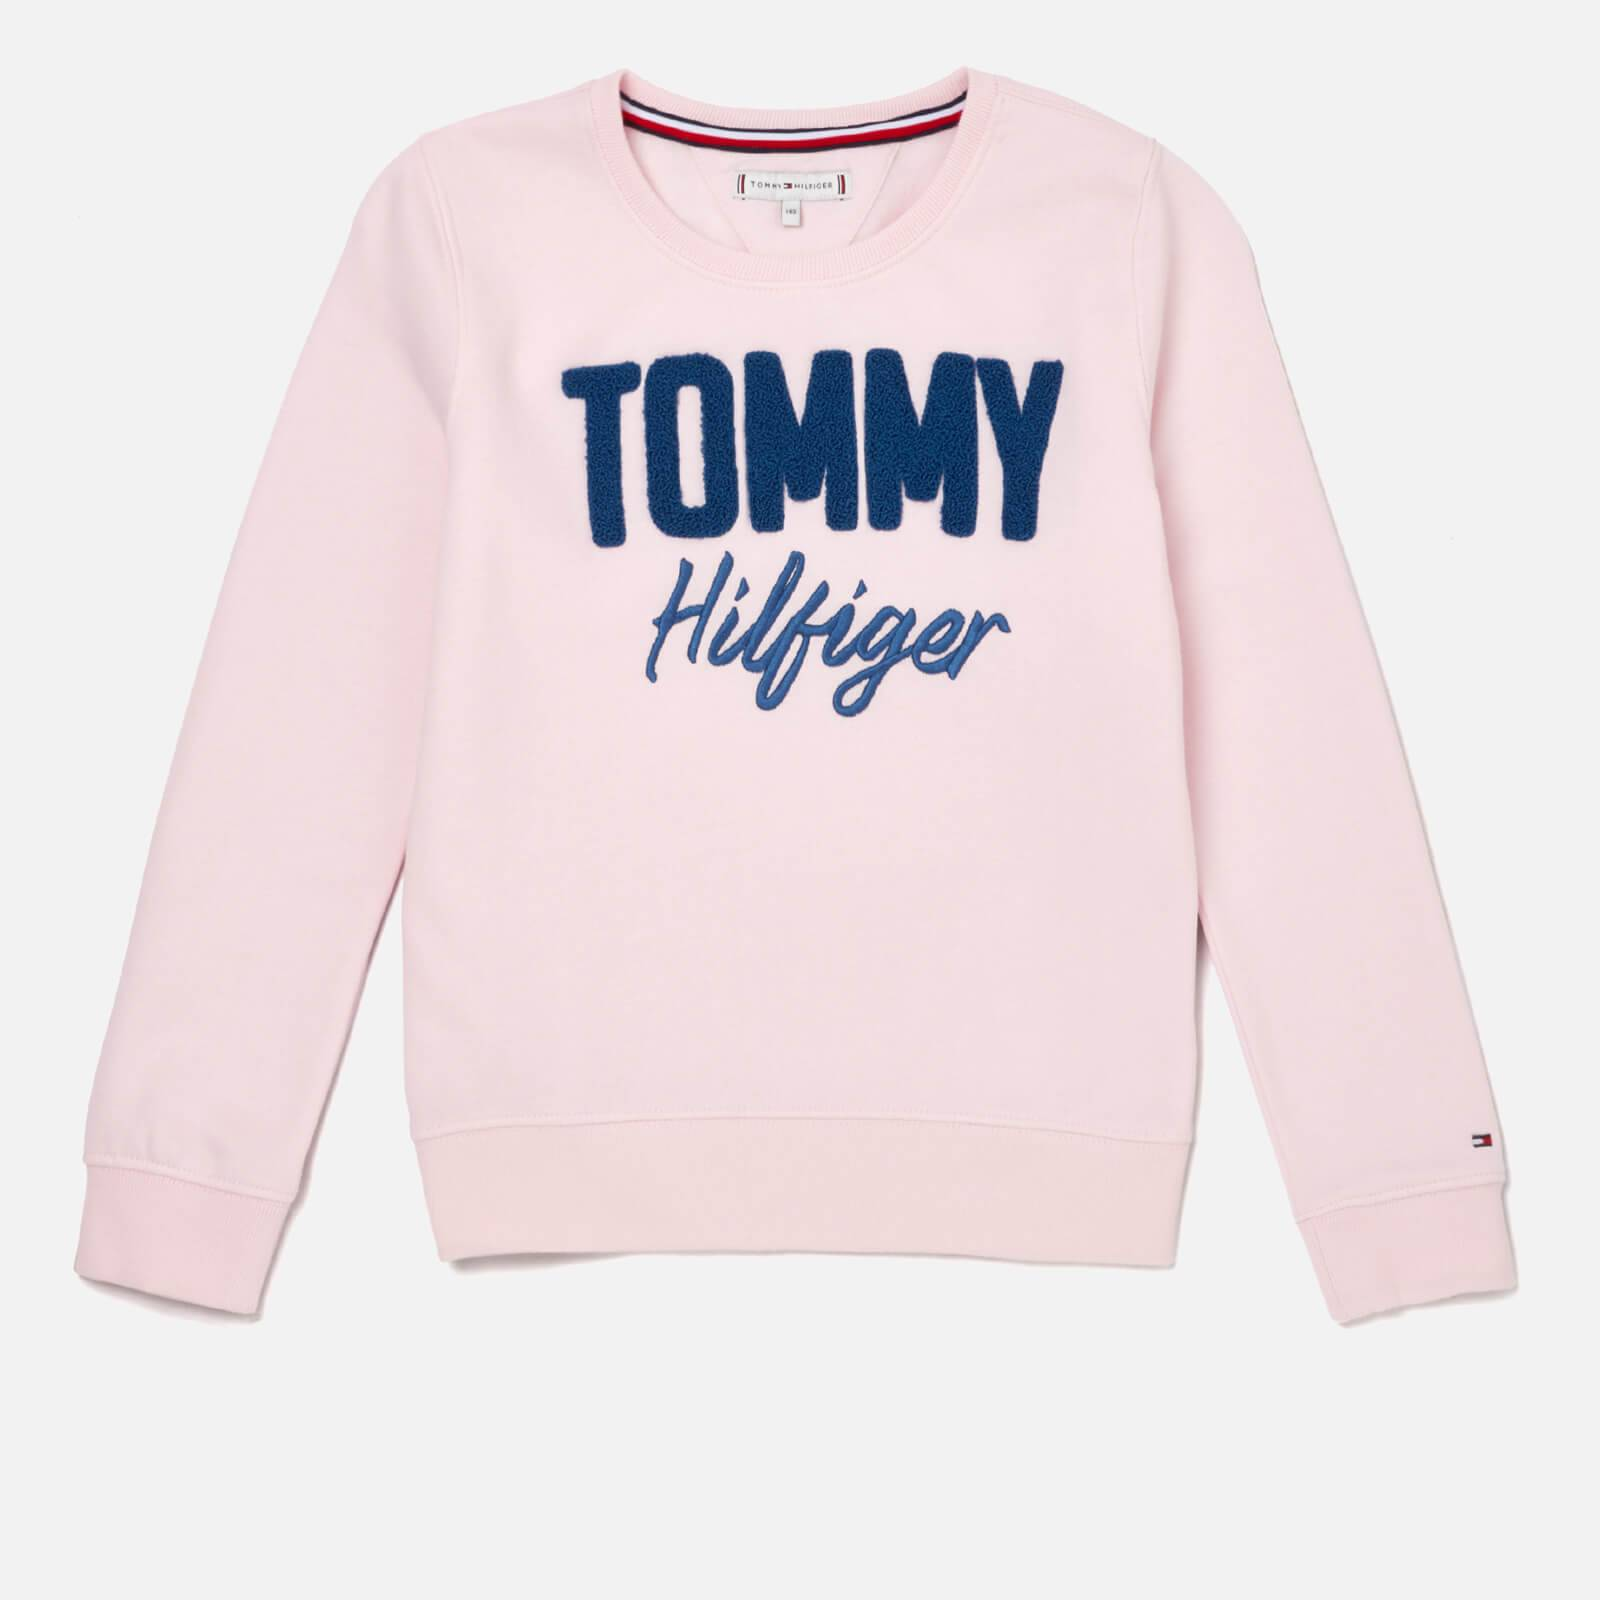 Tommy Hilfiger Girls' Mixed Applique Sweatshirt - Barely Pink - 8 Years - Pink